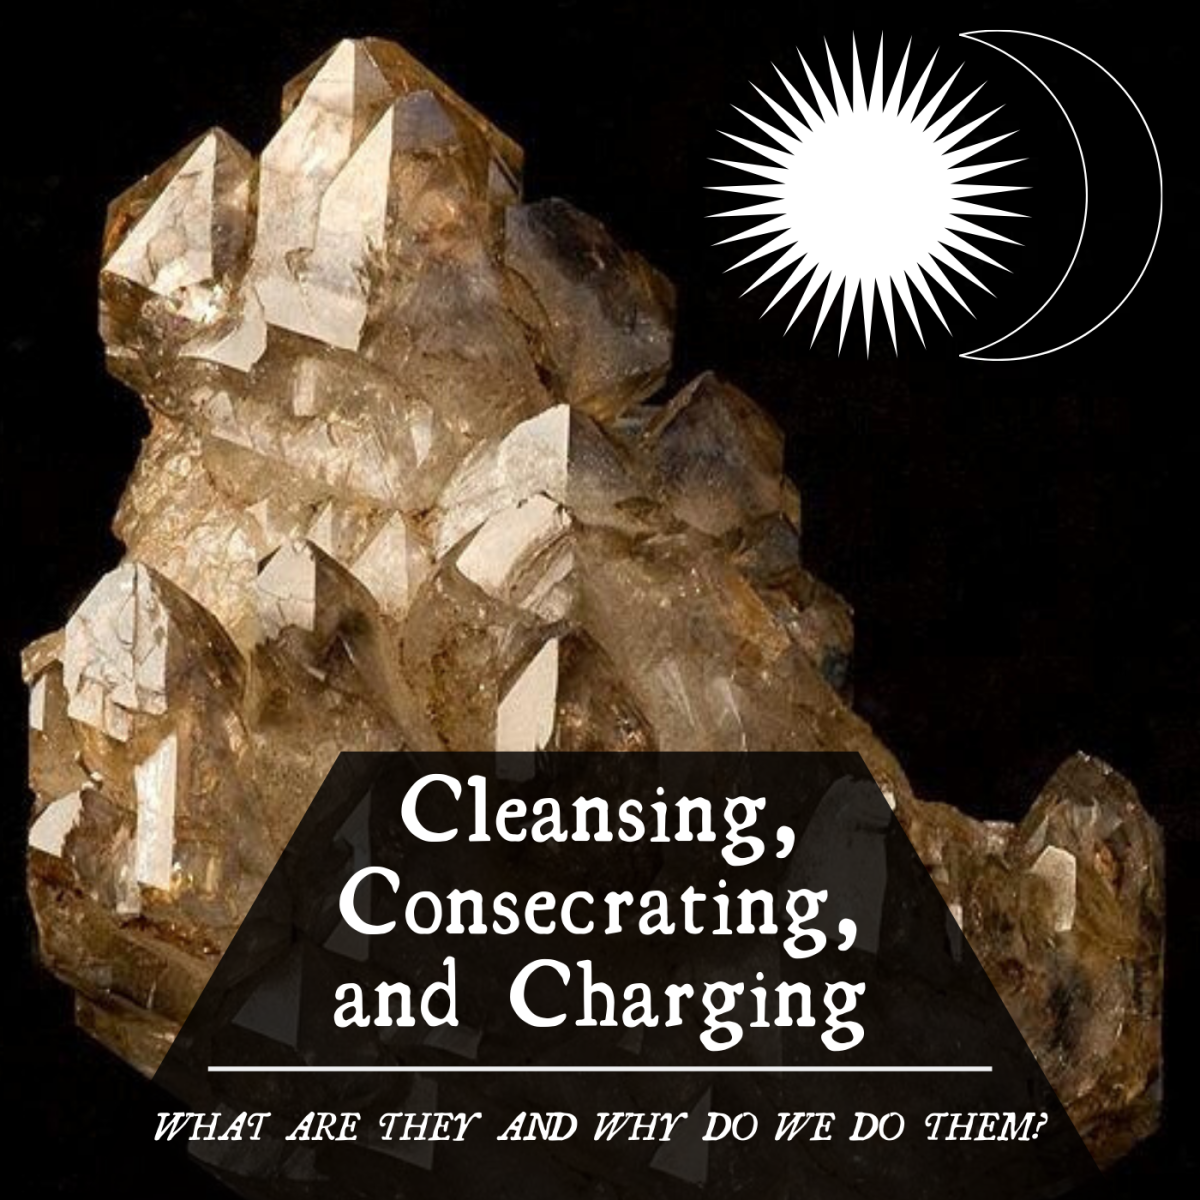 """If you're interested in Wicca, you've likely heard the terms """"cleanse,"""" """"consecrate,"""" and """"charge."""" But what do they mean?"""